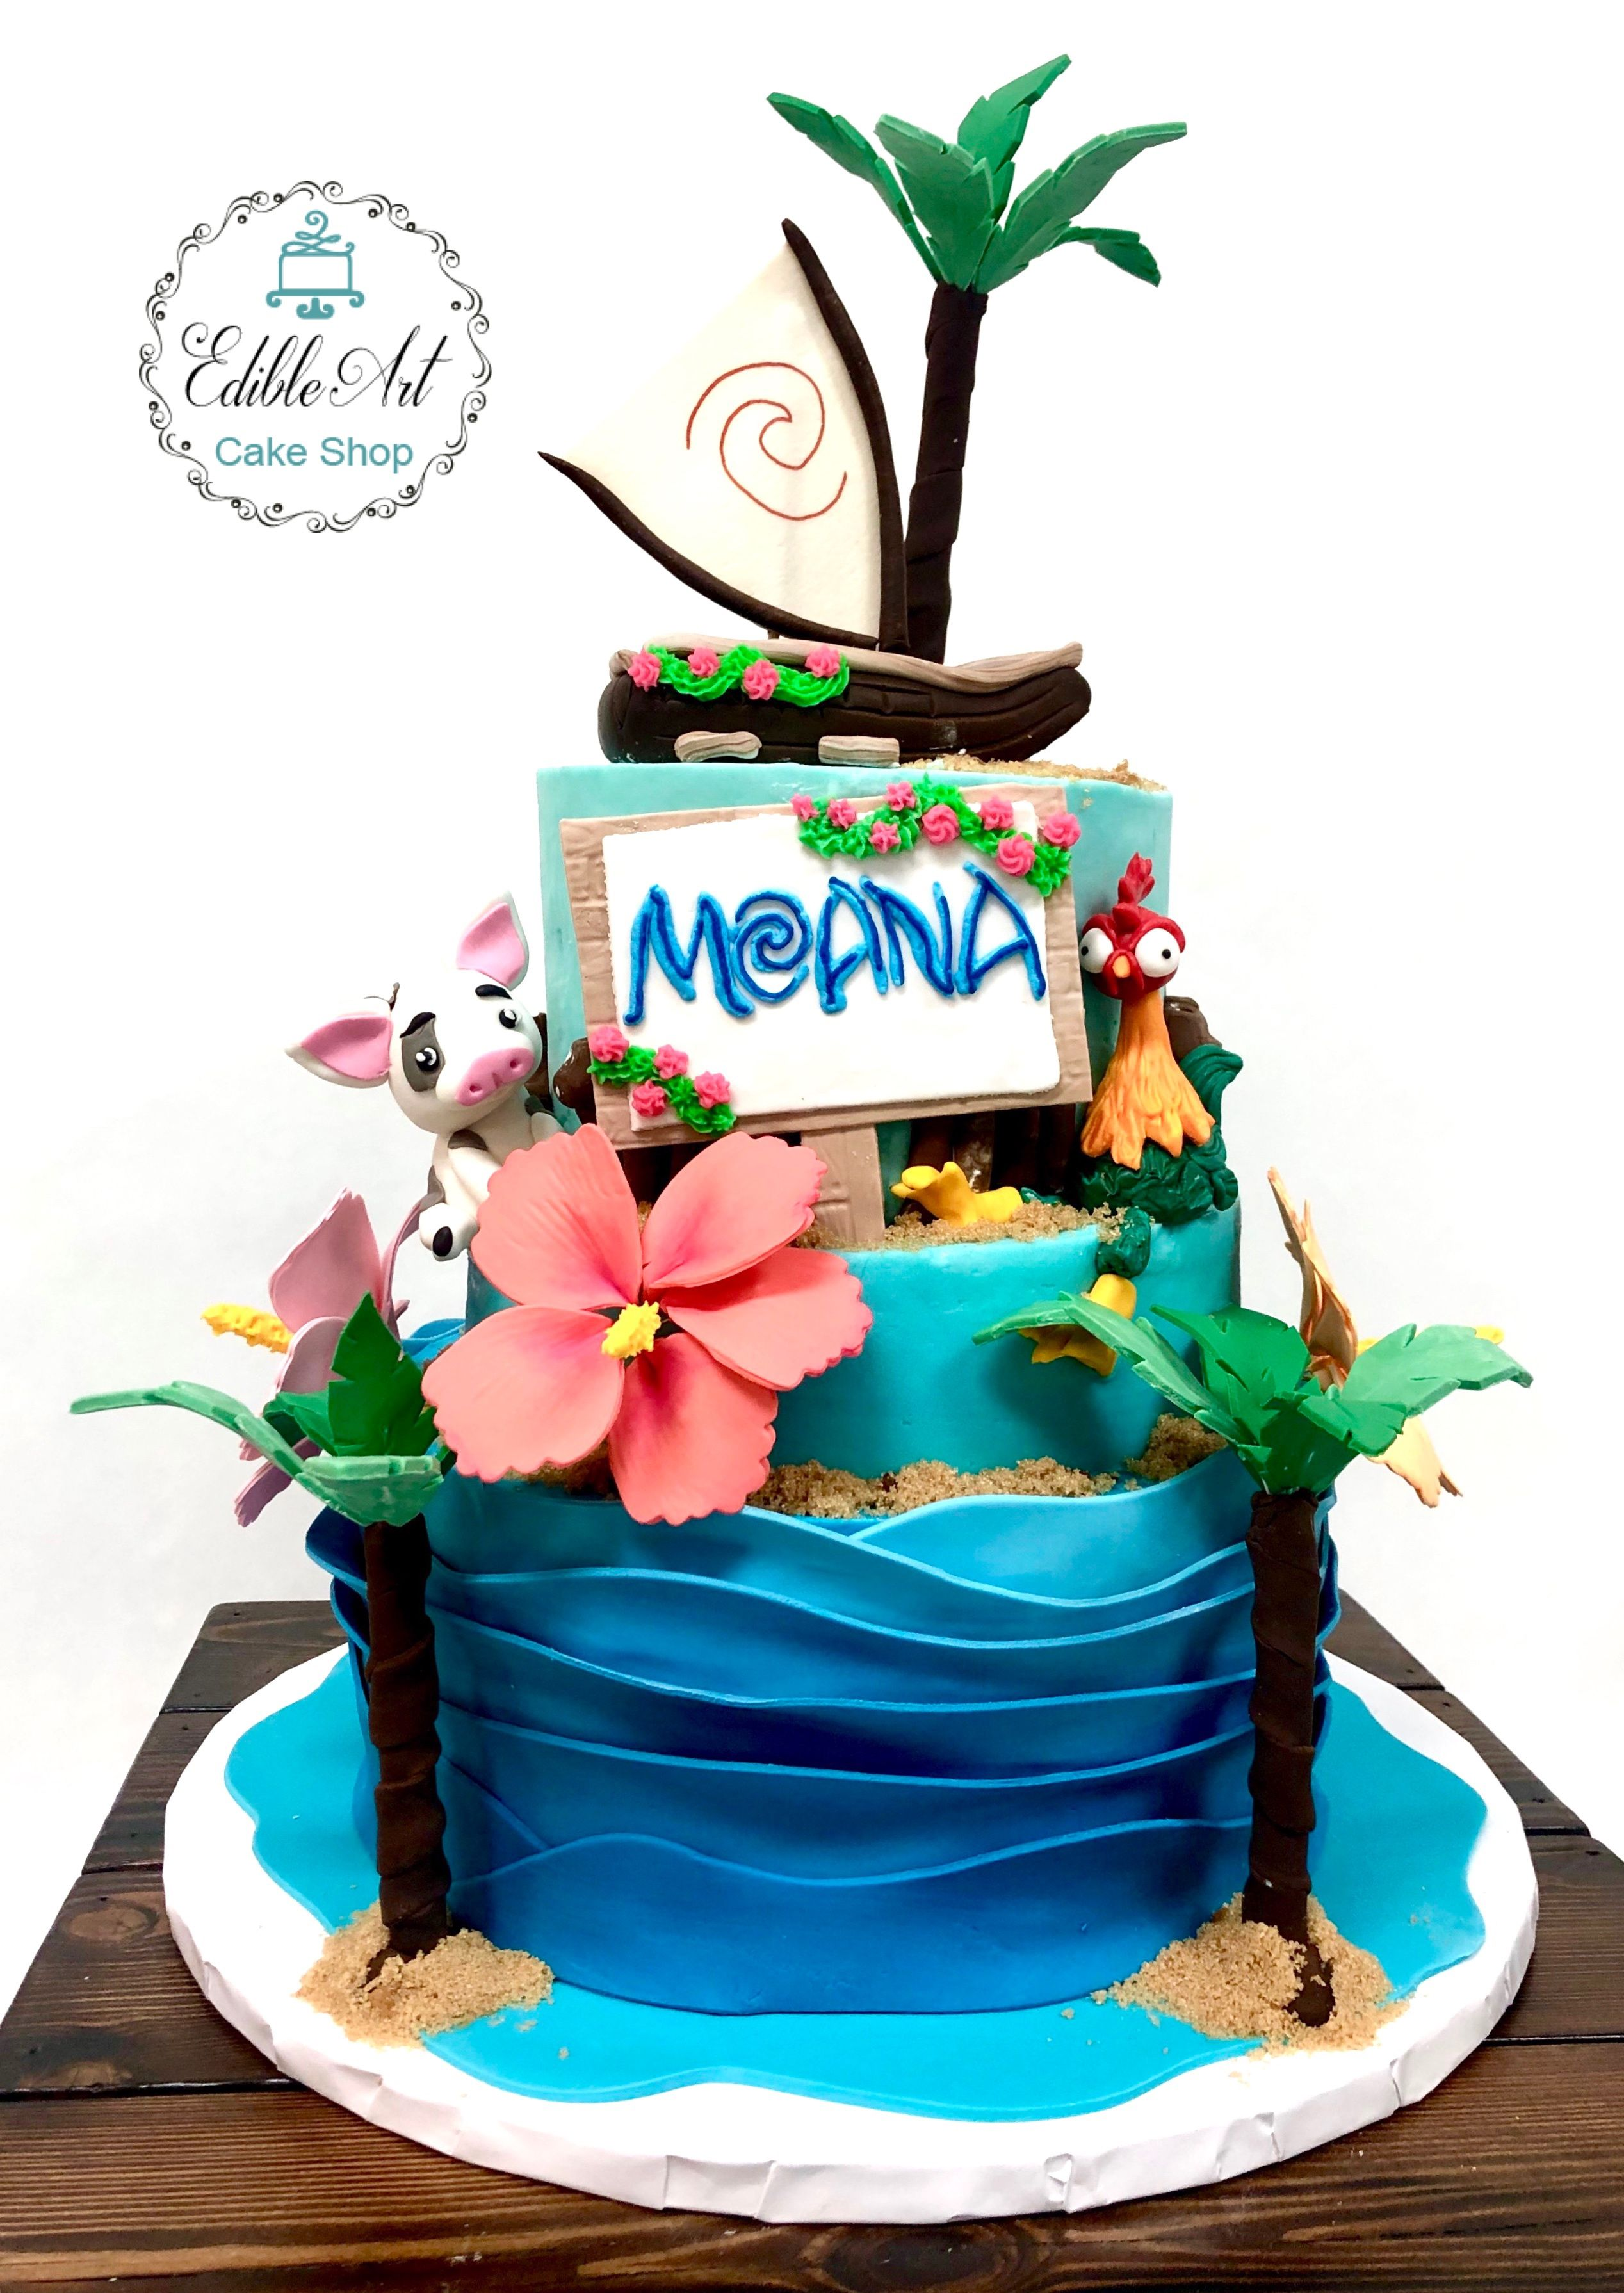 Cakes childrens birthday image by edible art cake shop